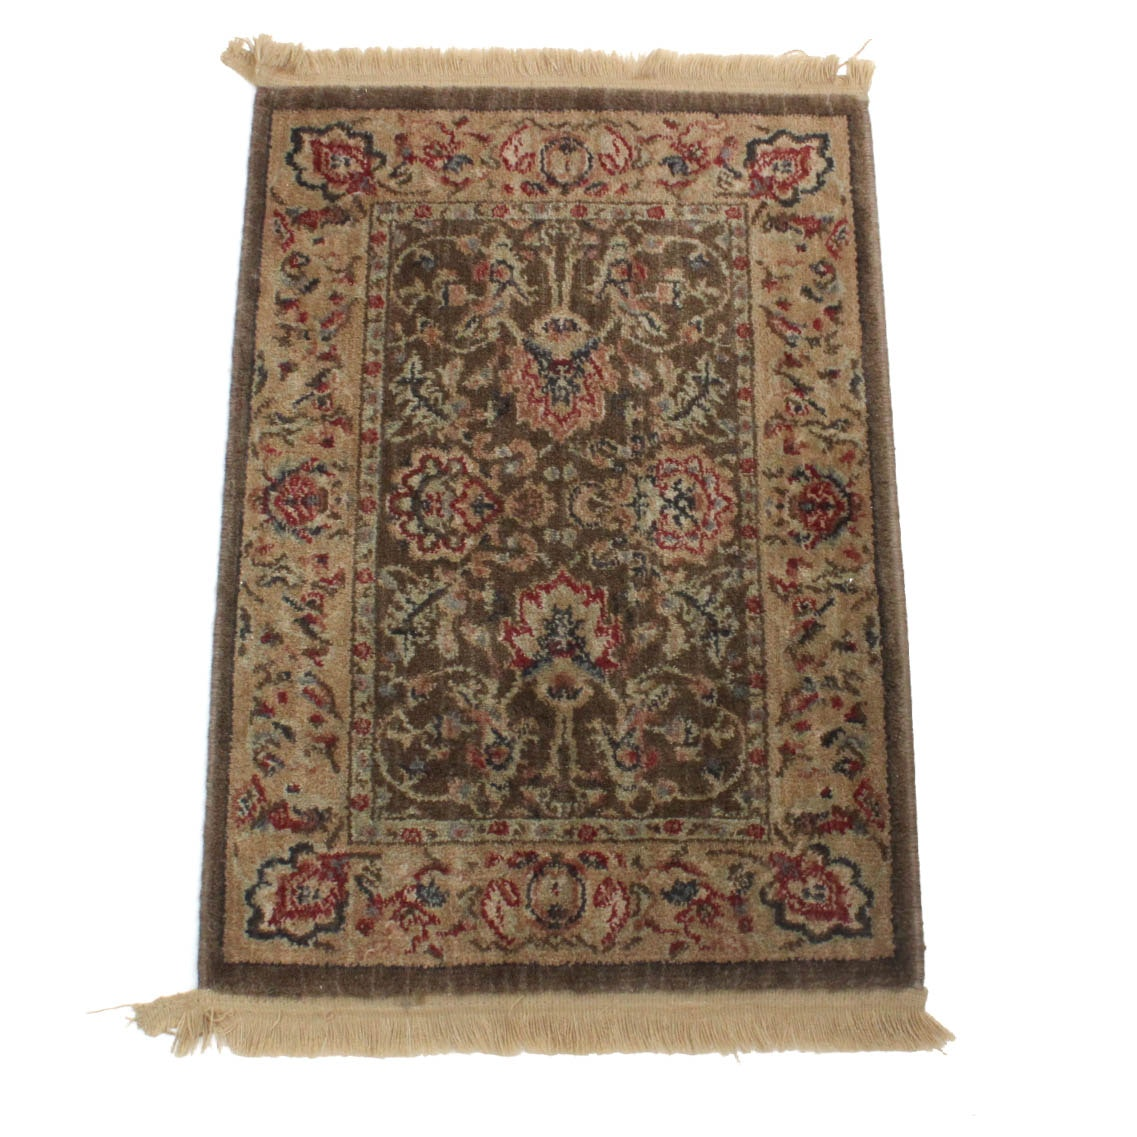 Power Loomed Persian-Style Accent Rug